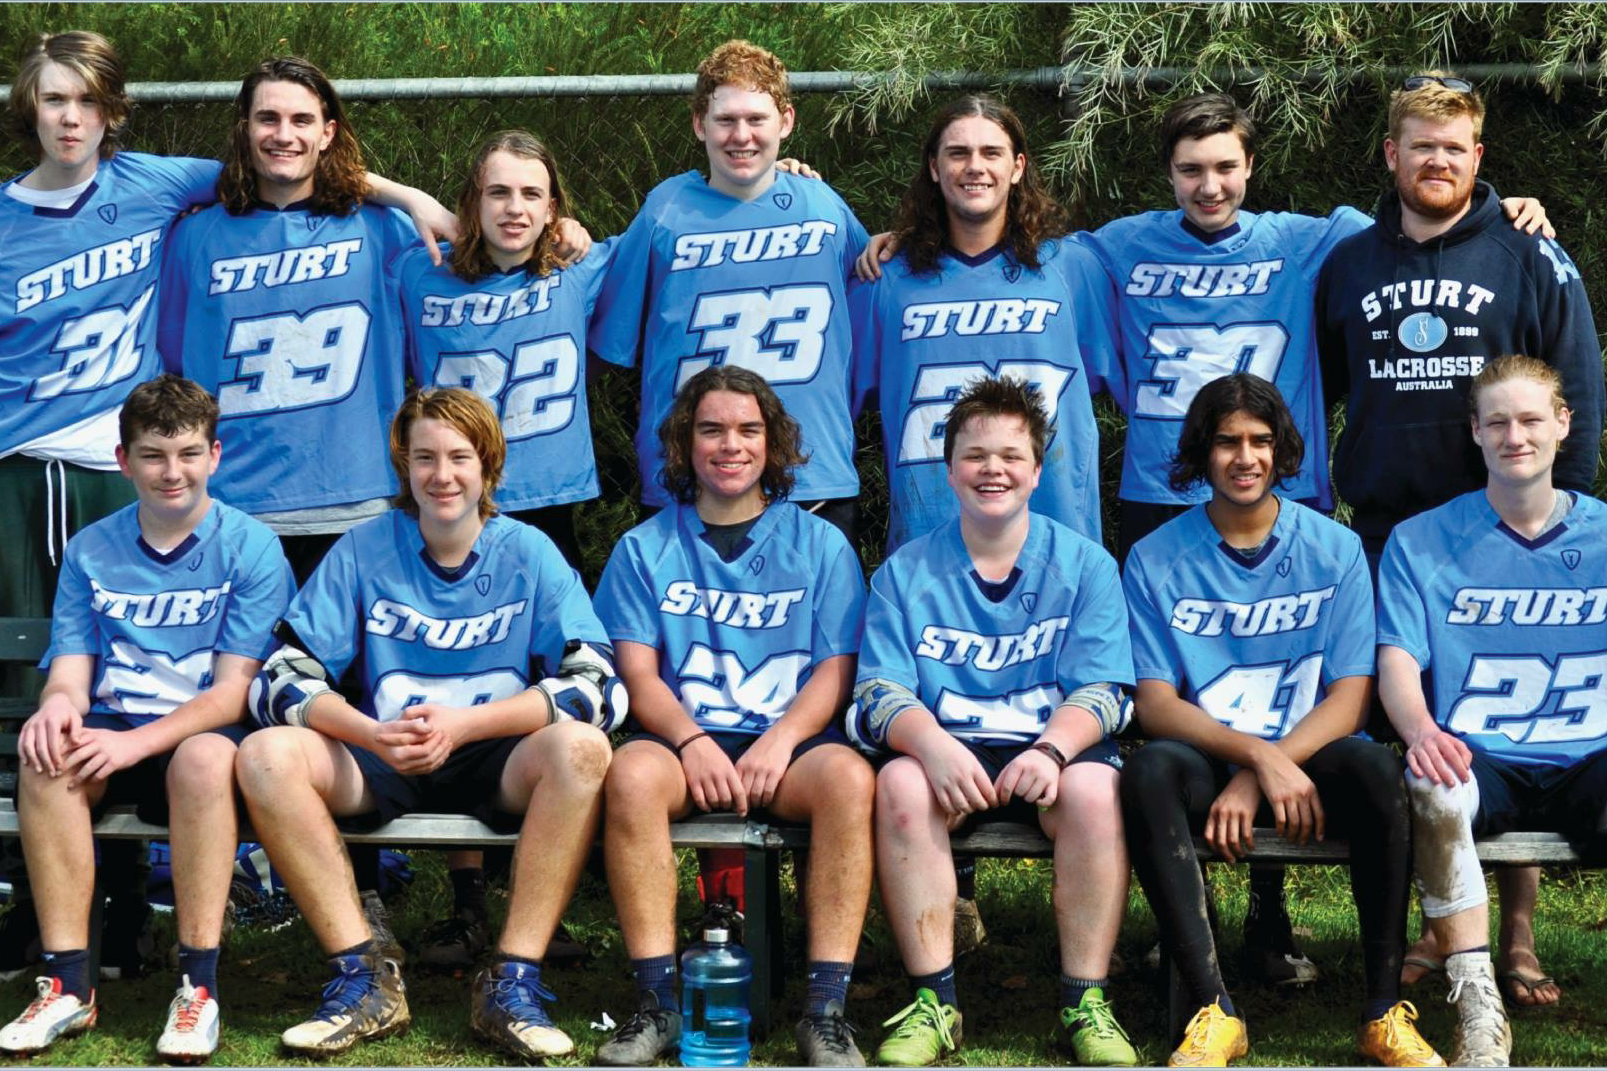 Sturt Lacrosse Club – u17 boys team